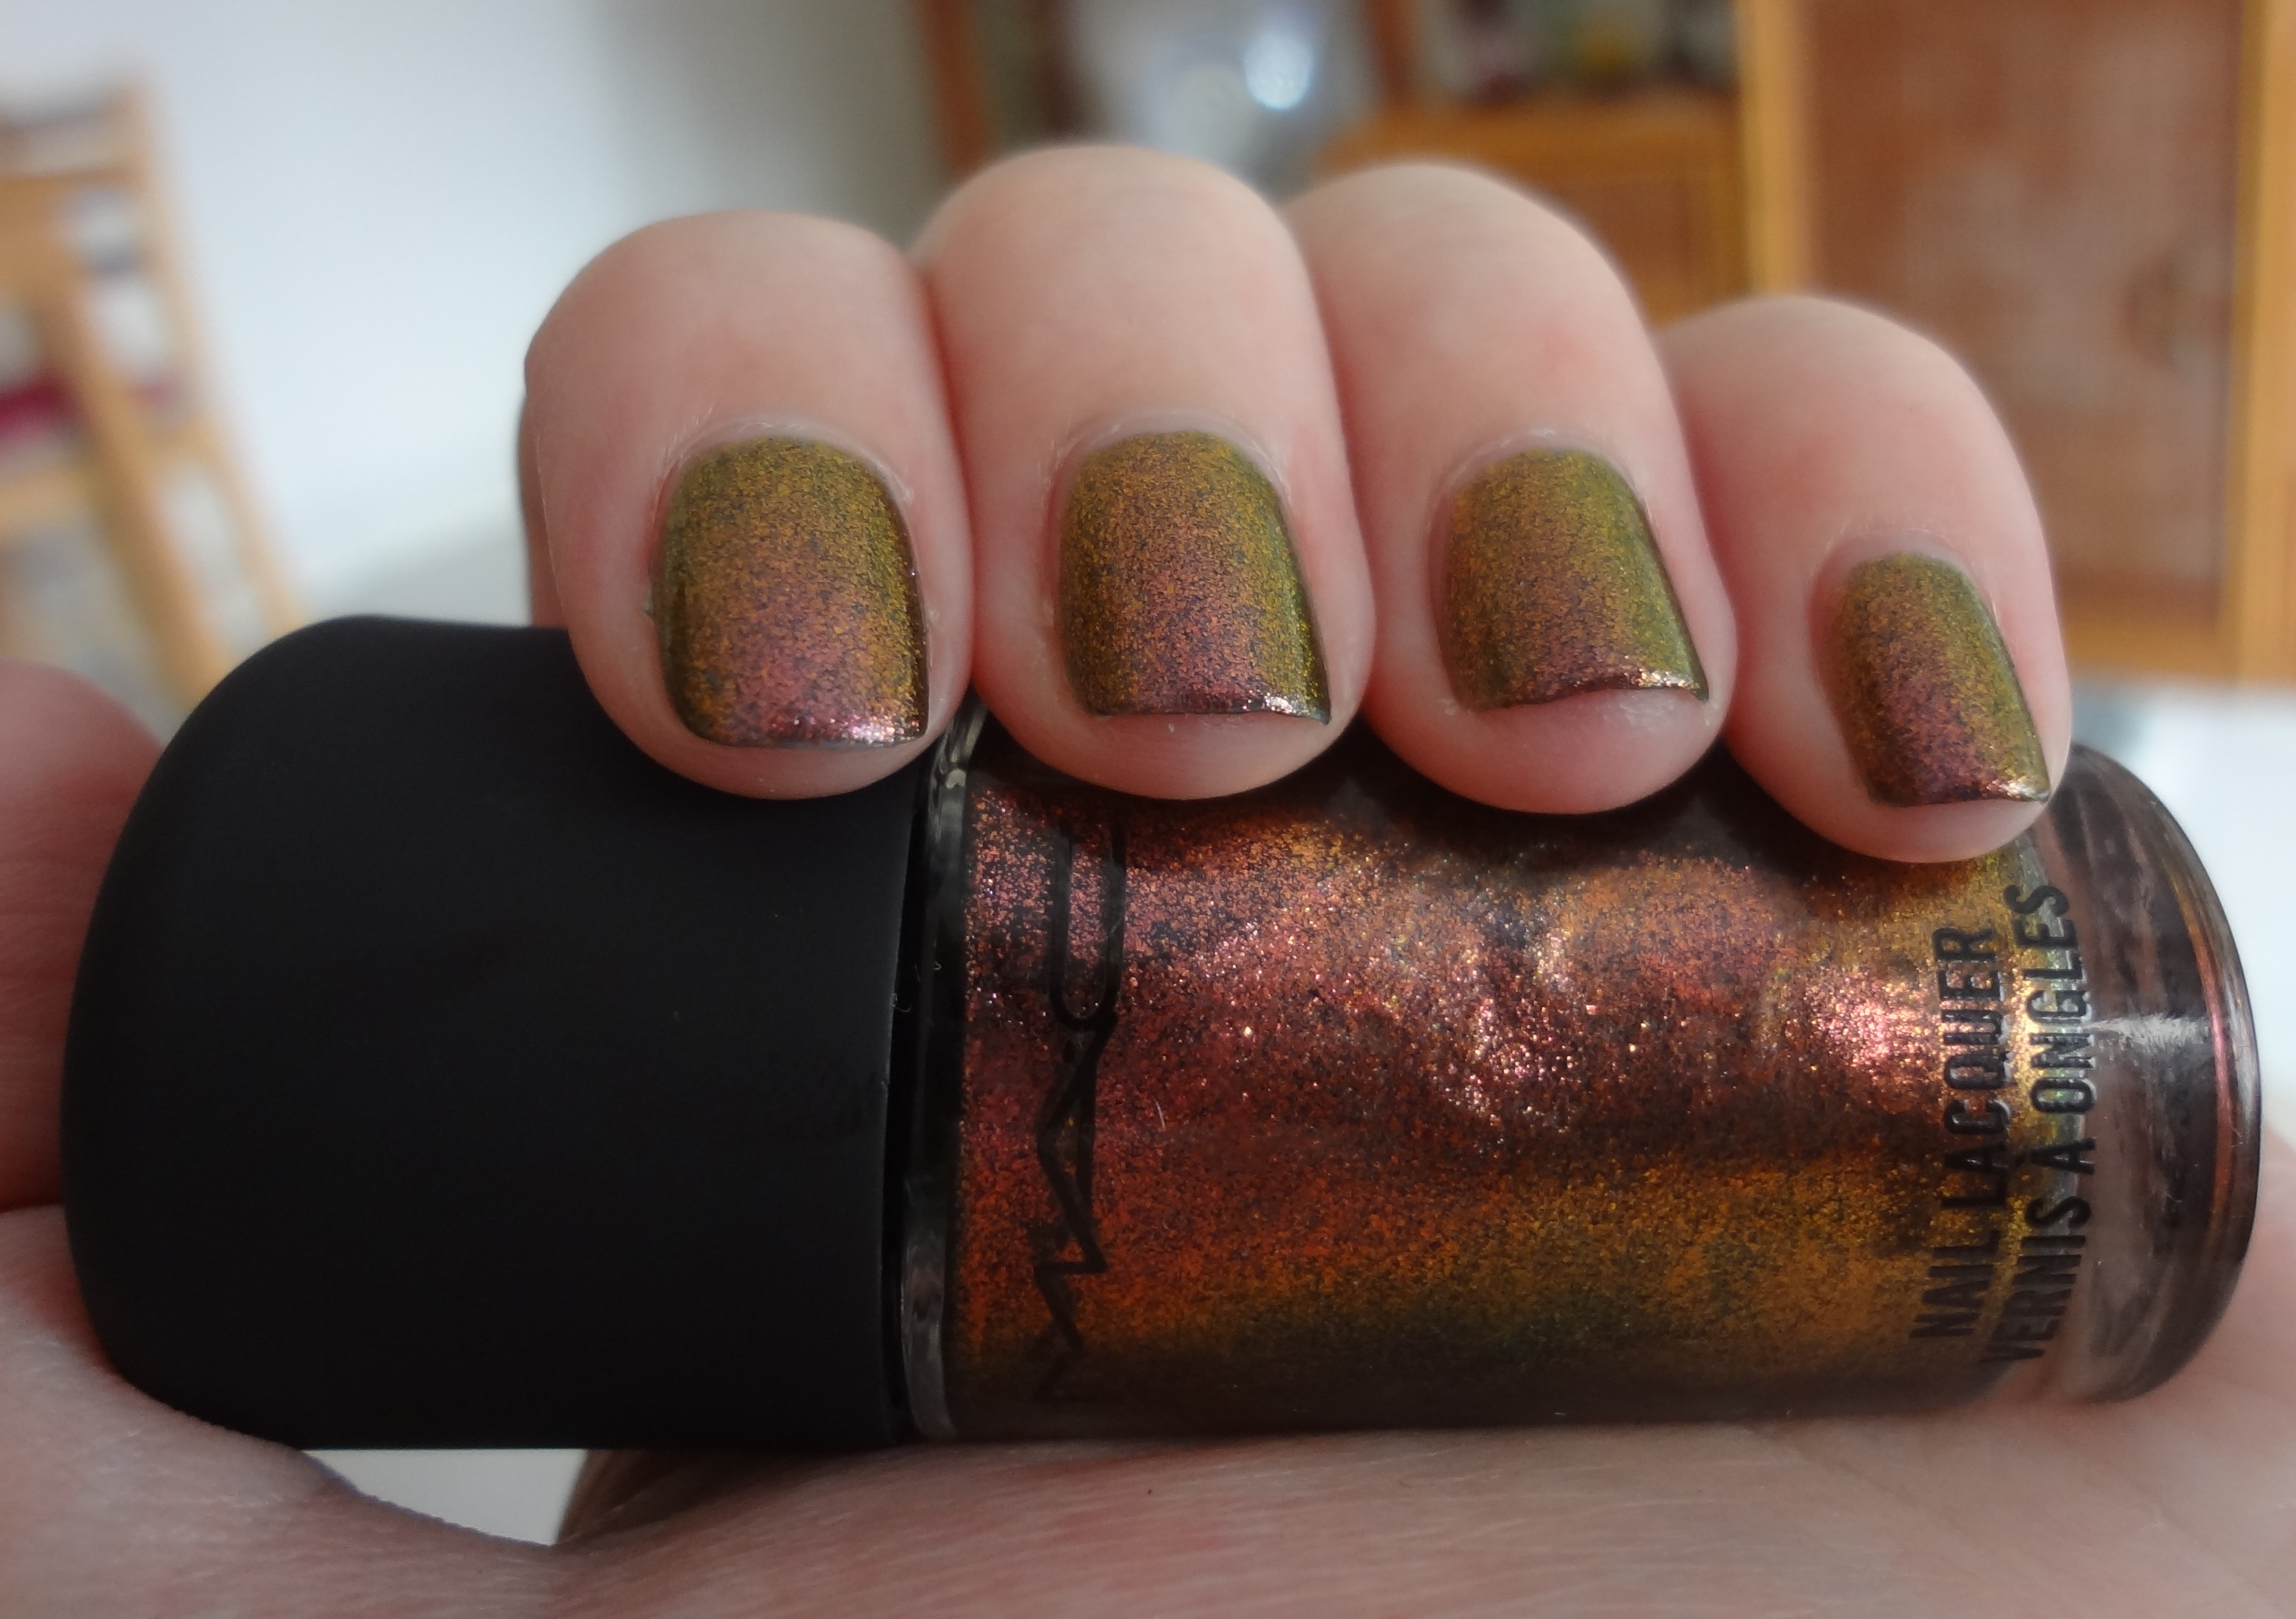 Mac Mean & Green nail polish review | Through The Looking Glass